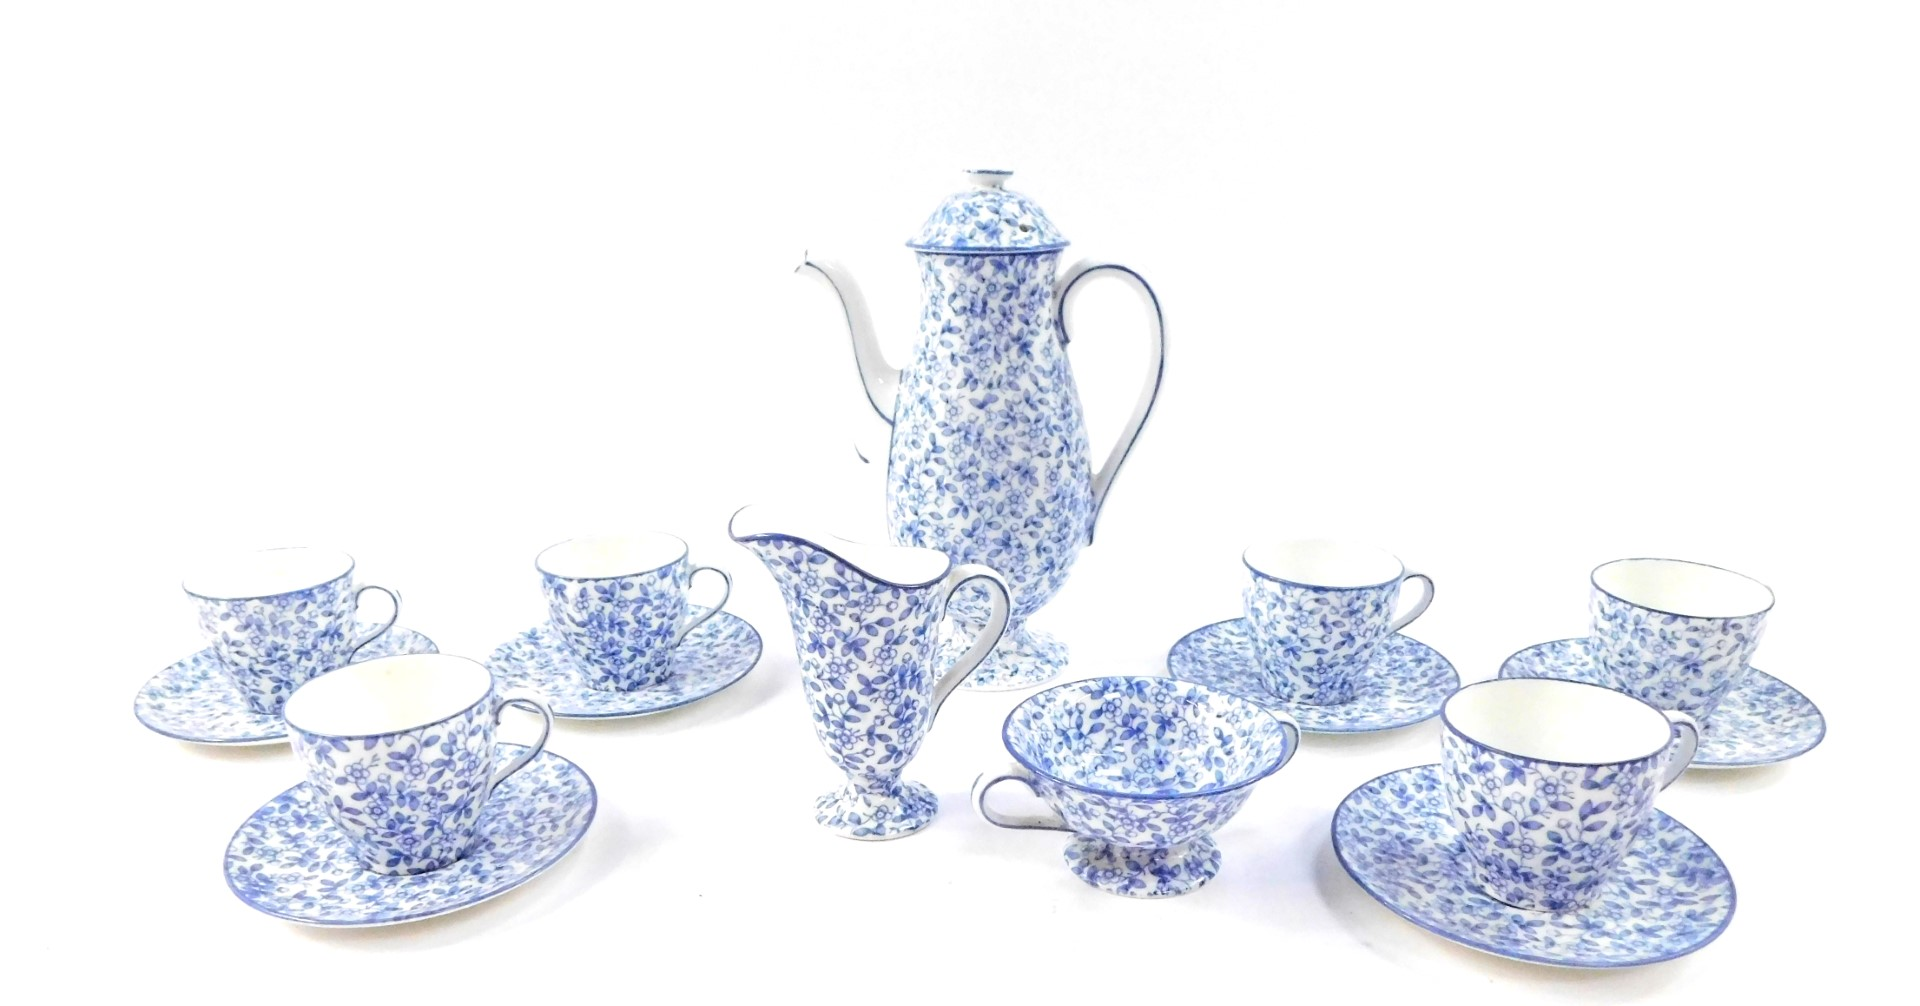 Lot 34 - A Royal Doulton early 20thC blue and white porcelain coffee service, decorated with a floral sheet